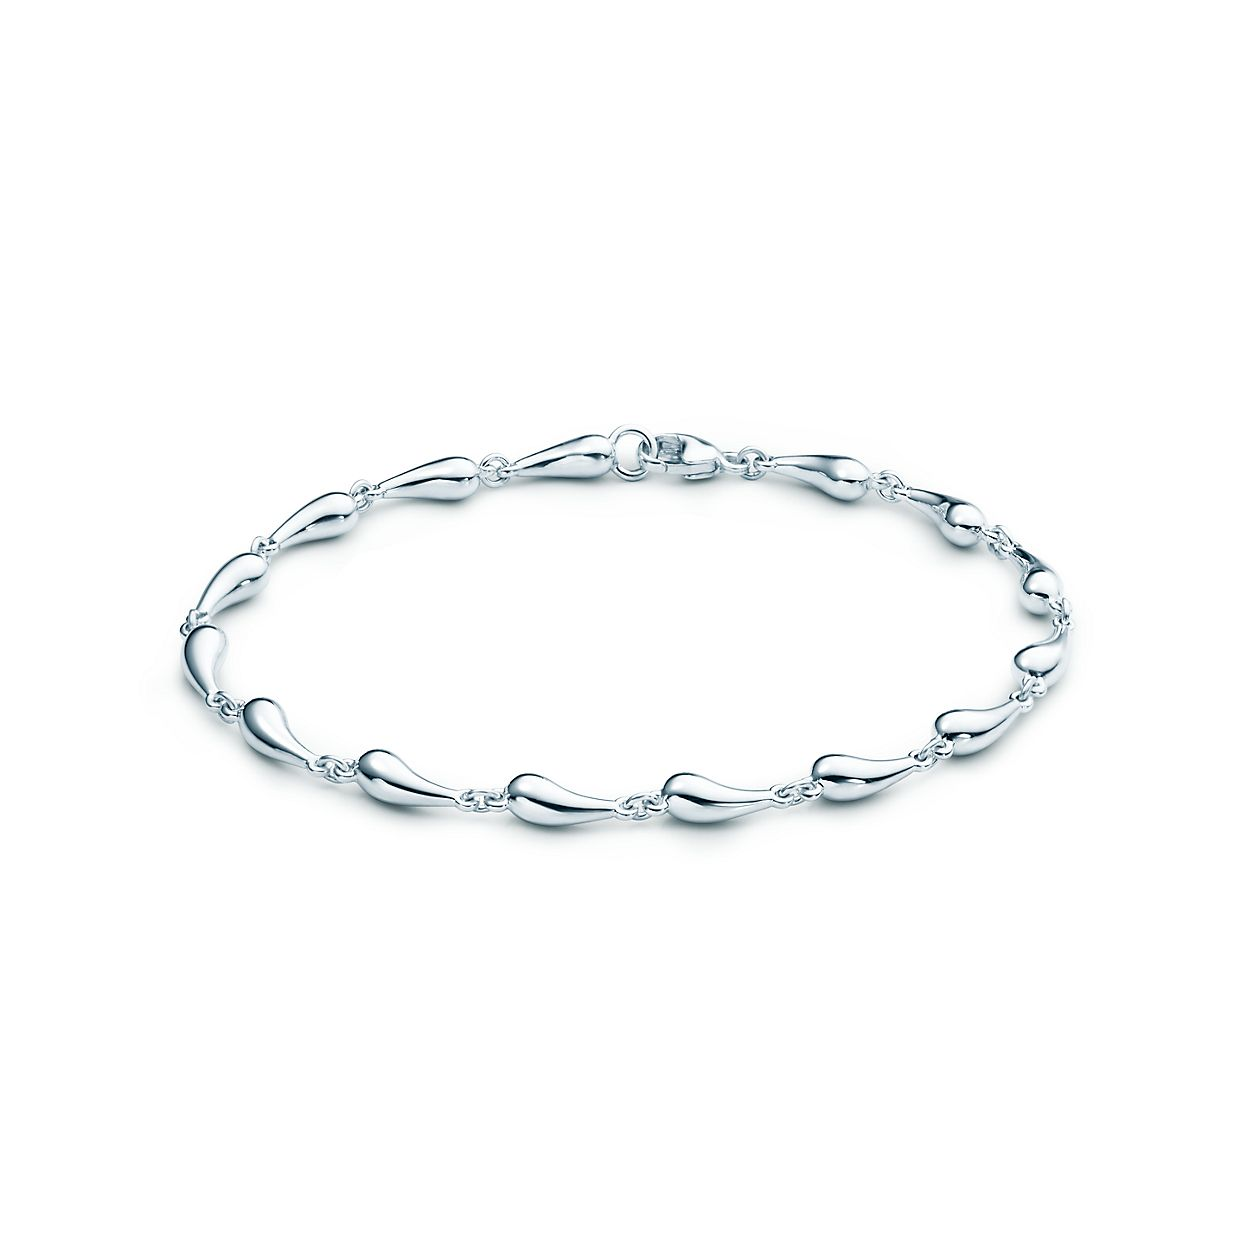 Tiffany 1837 circle bracelet in sterling silver, medium - Size 7.25 IN Tiffany & Co.